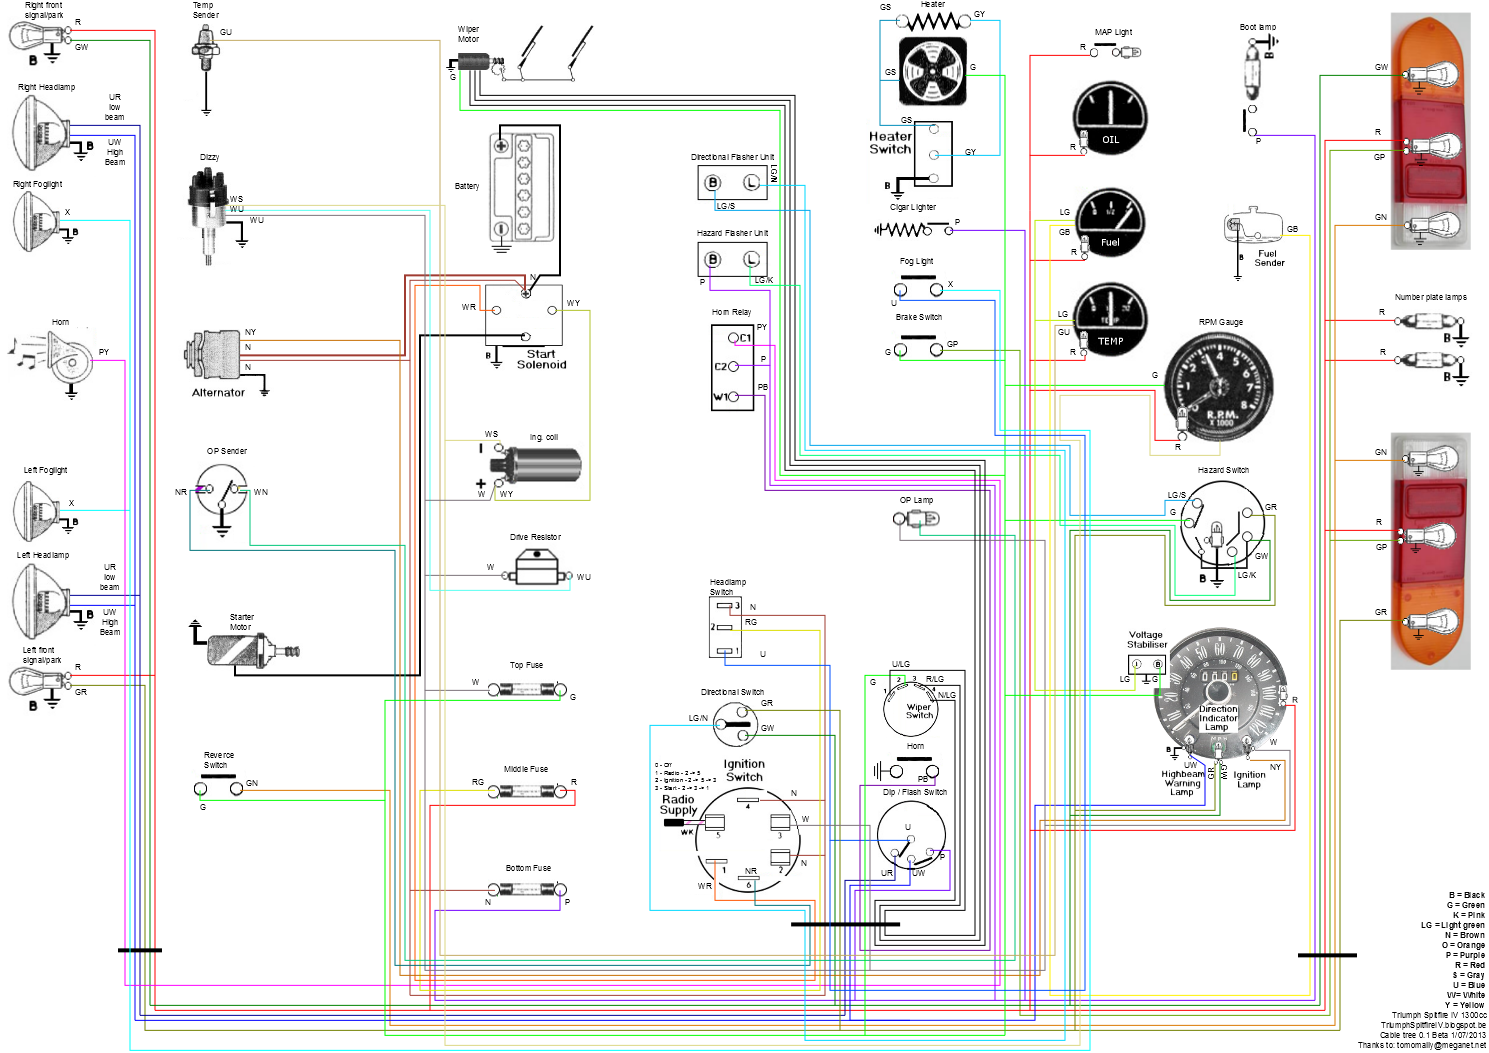 spitfire iv wiring diagram spitfire mkiv wiring diagram how to library the triumph experience 1969 triumph tr6 plus wiring diagram at eliteediting.co